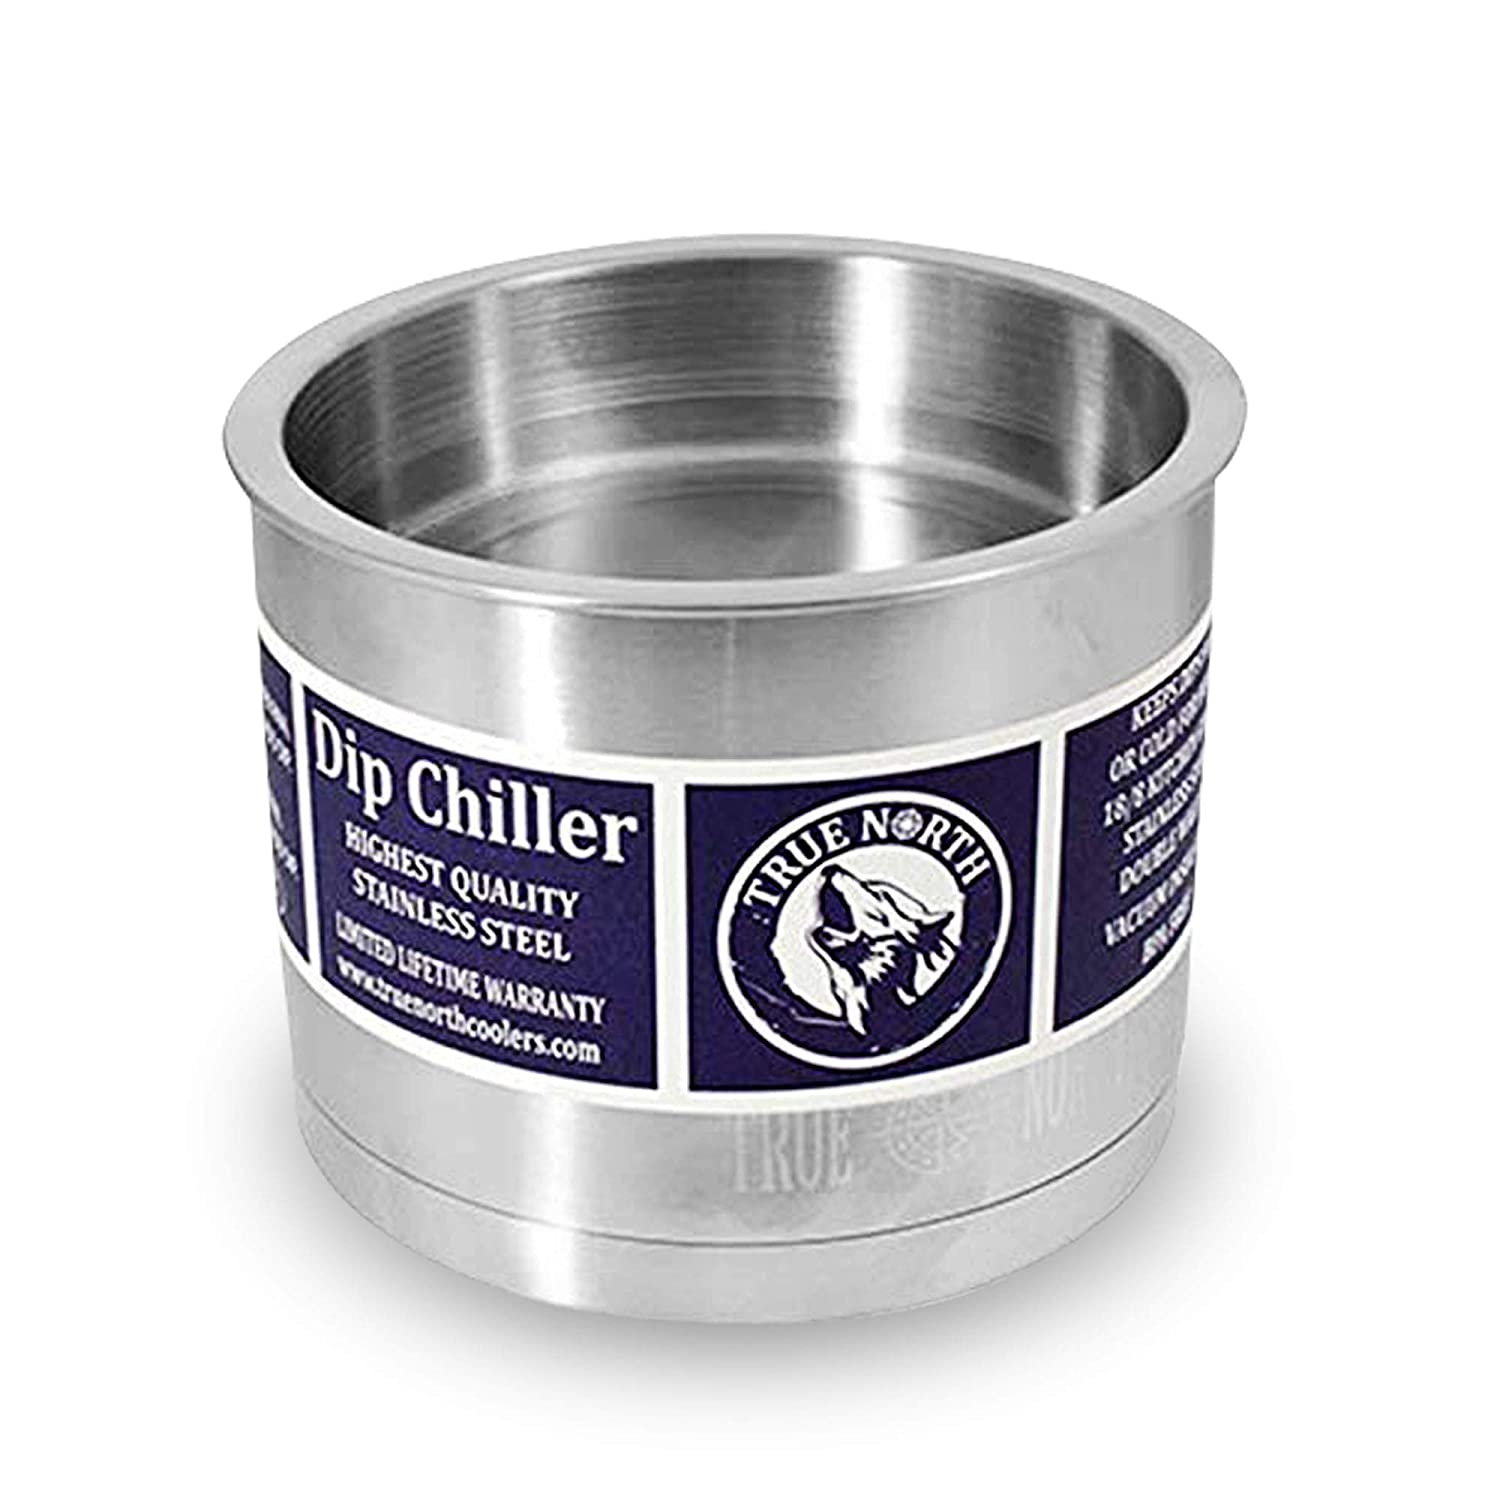 True North Stainless Steel Insulated Serving Bowl + Dip Chiller, Keeps Food and Beverages Hot or Cold Up To 24 Hours, 35 oz, Stainless Steel